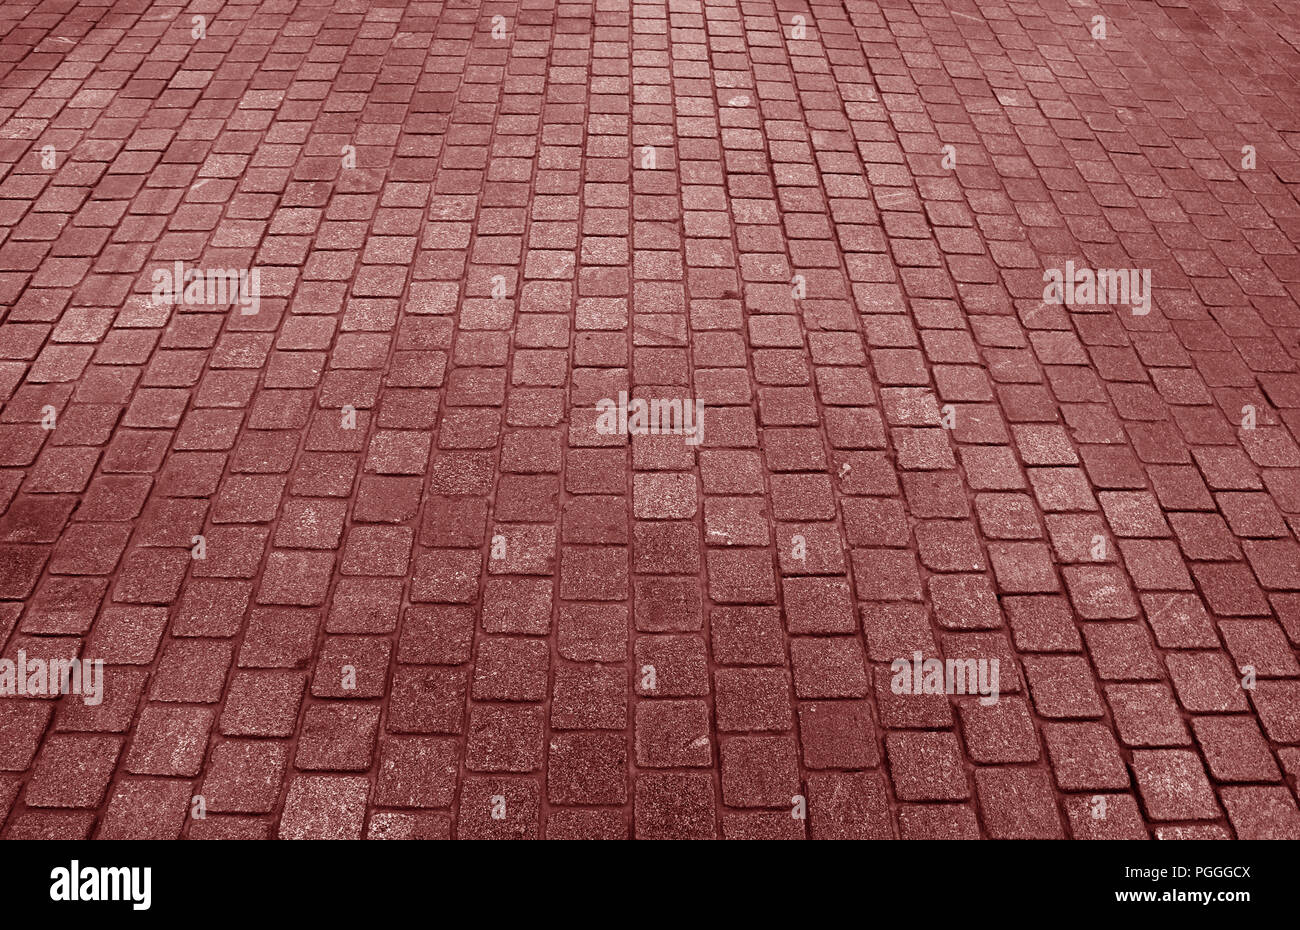 Red Brown Colored Concrete Block Paved Pathway for Texture Background, Banner or Pattern - Stock Image